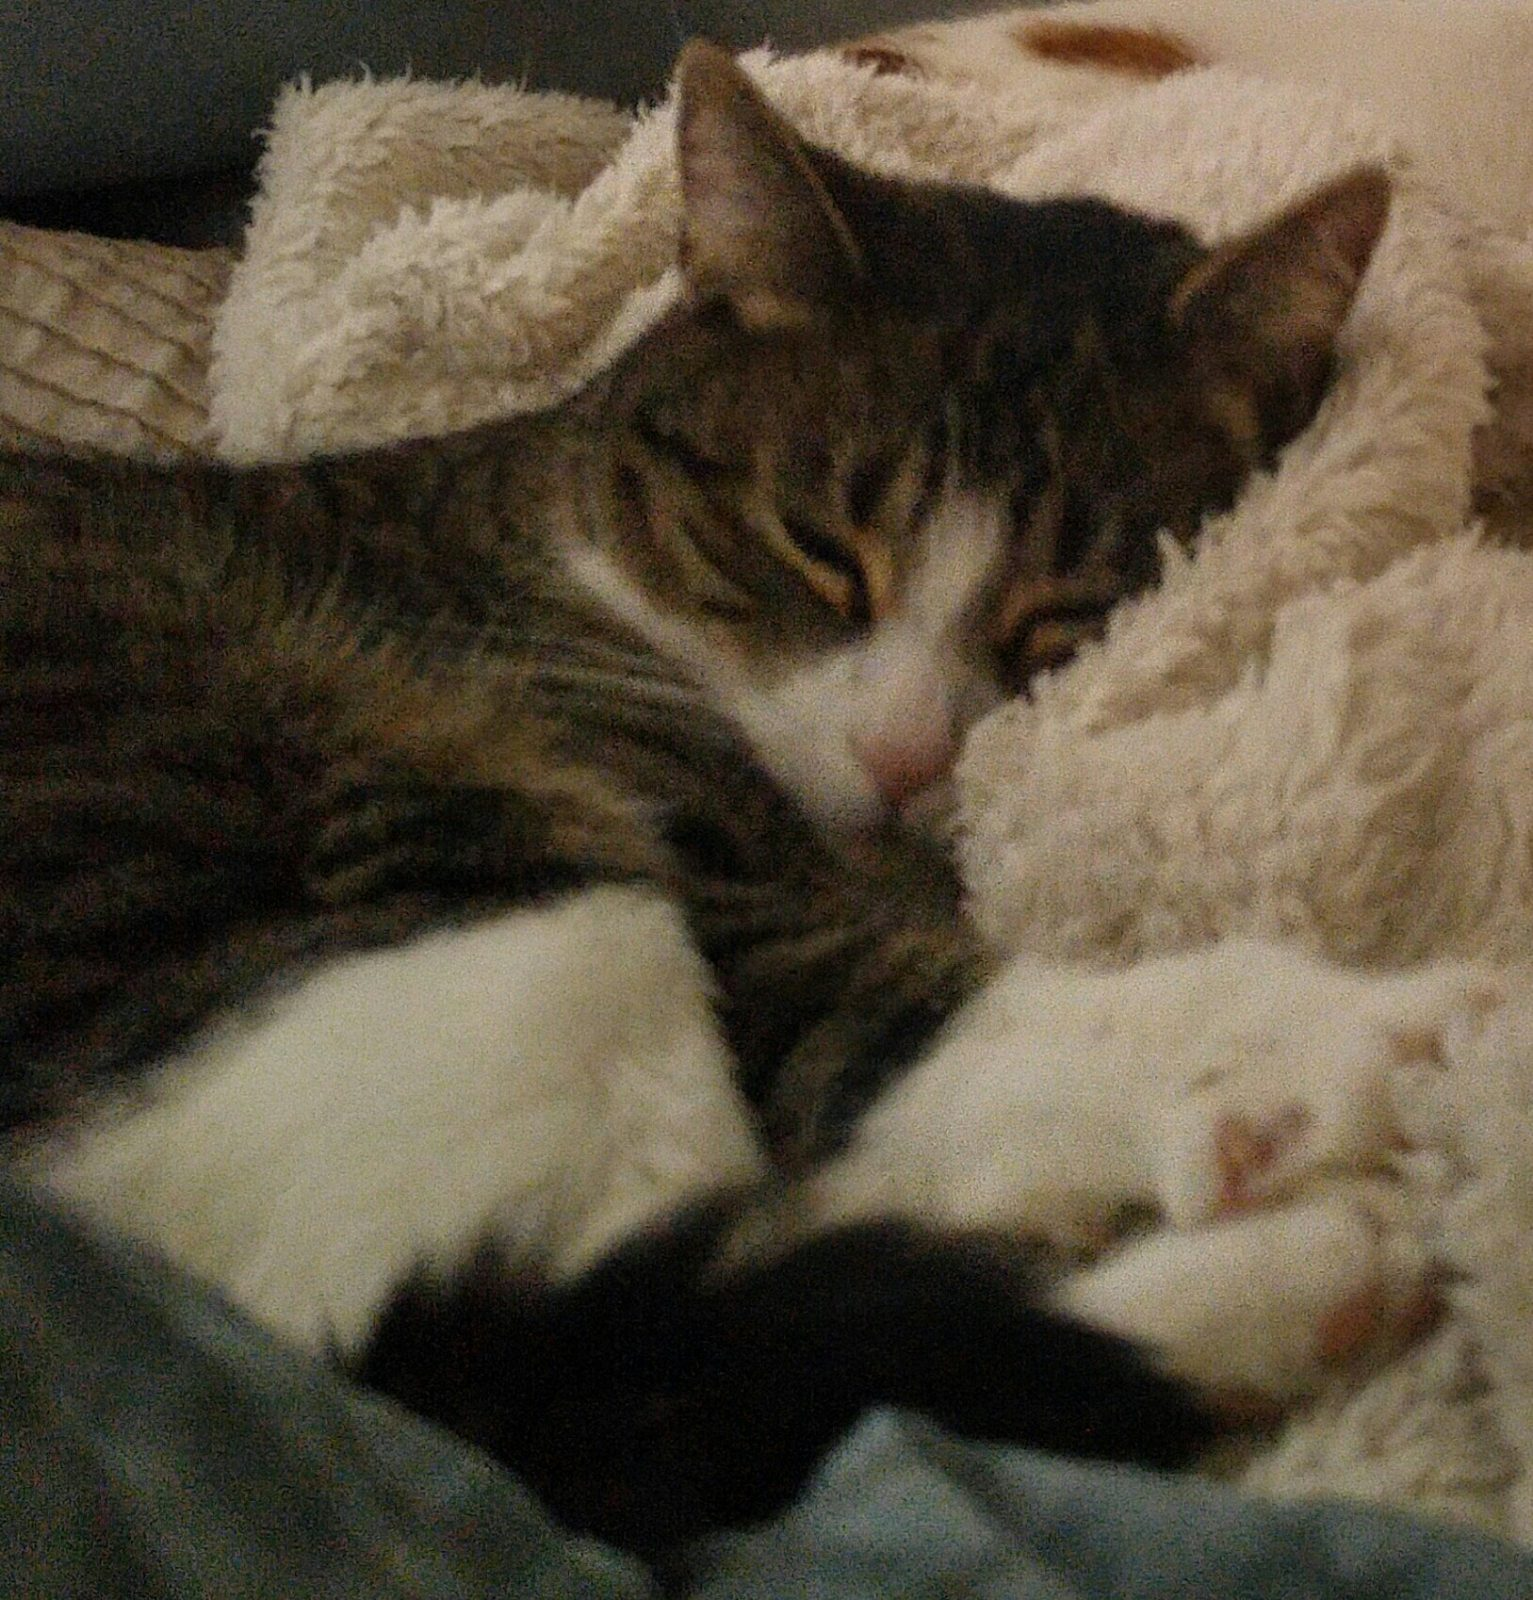 LETTER TO THE EDITOR: No euthanasia for roaming cats!